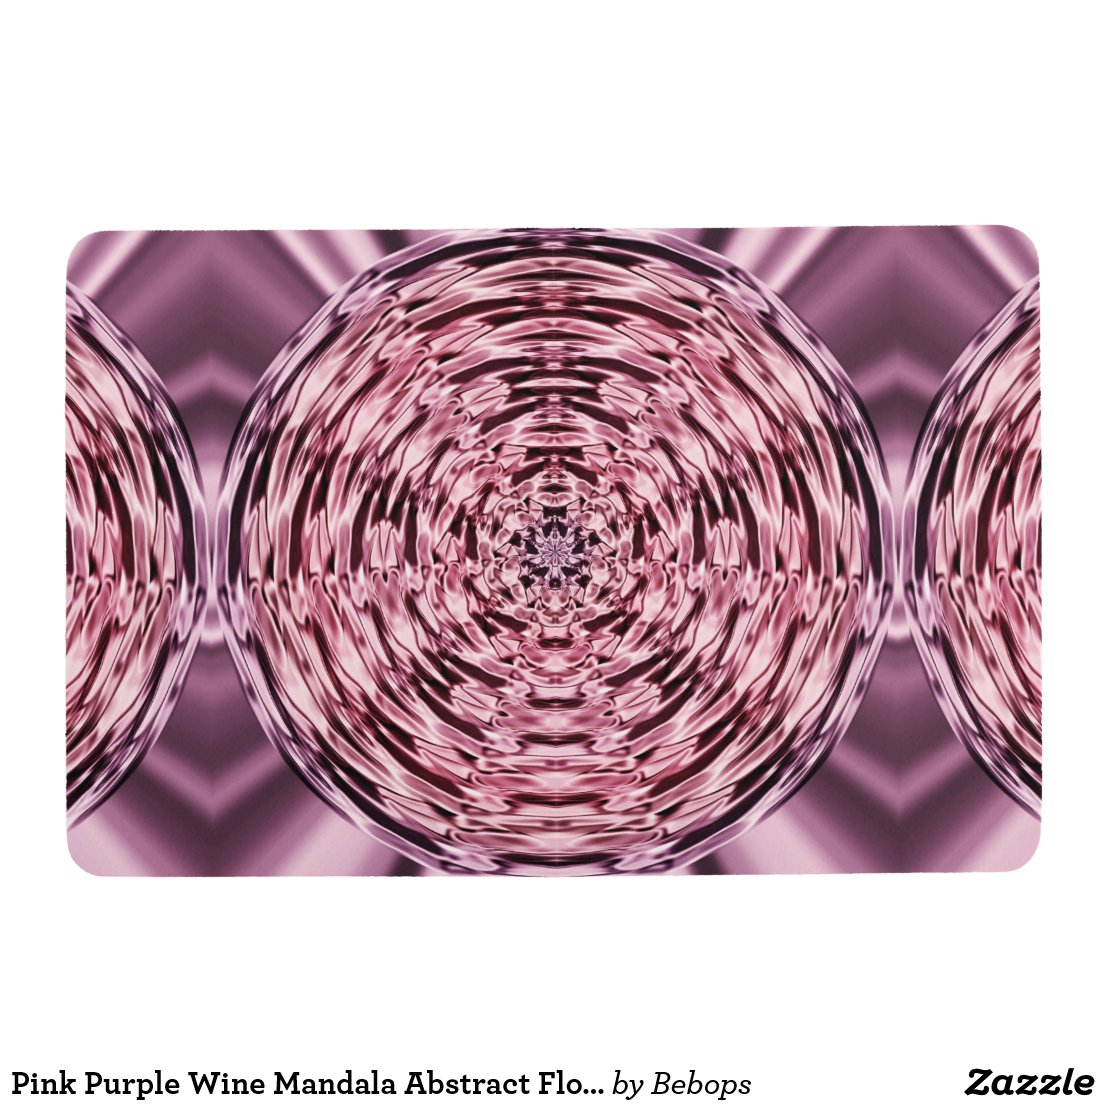 Pink Purple Wine Mandala Abstract Floor Mat